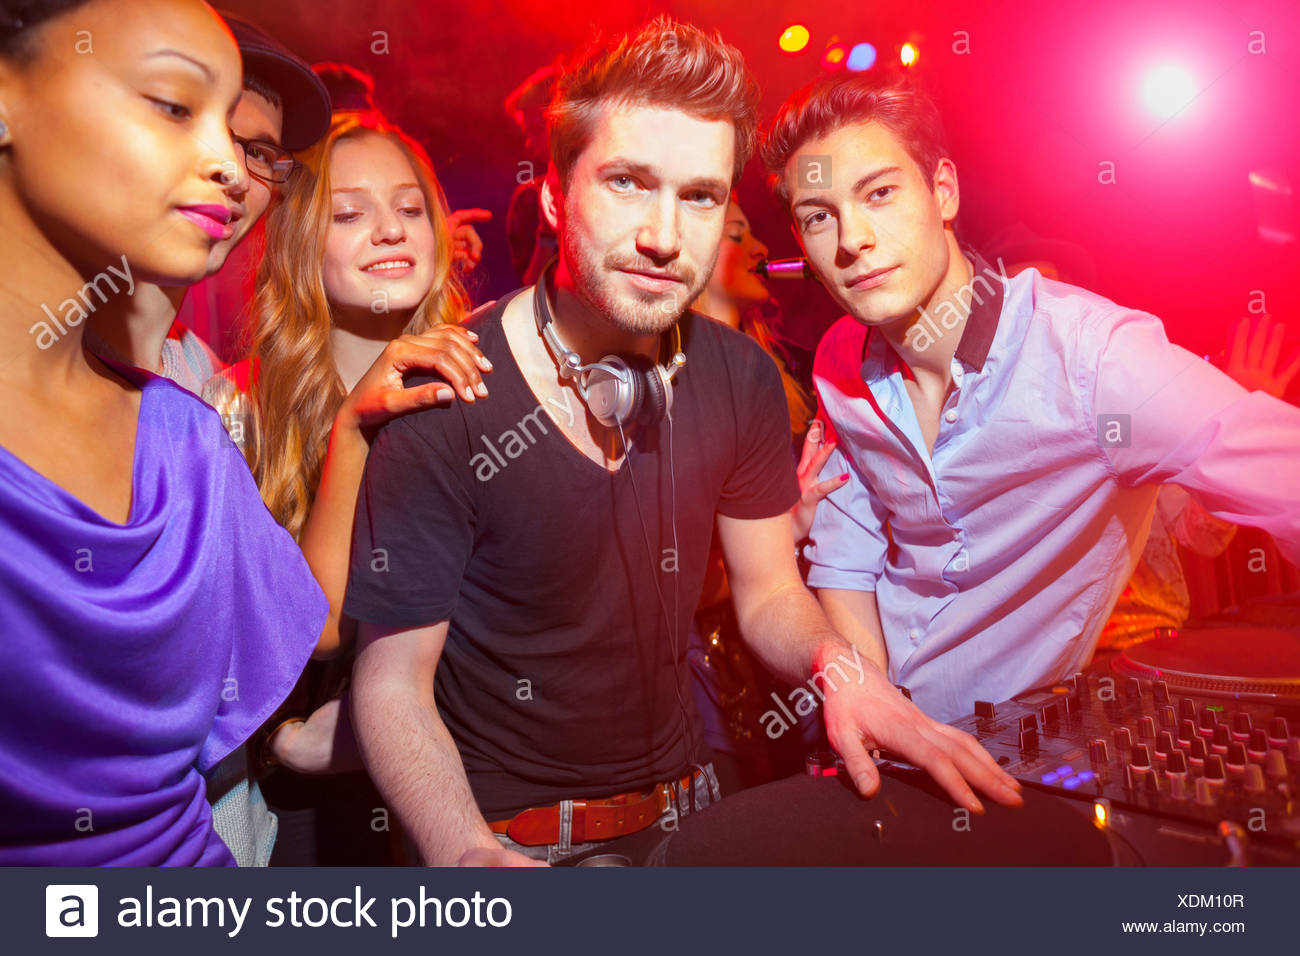 Disc Jockey surrounded by group of people - Stock Image